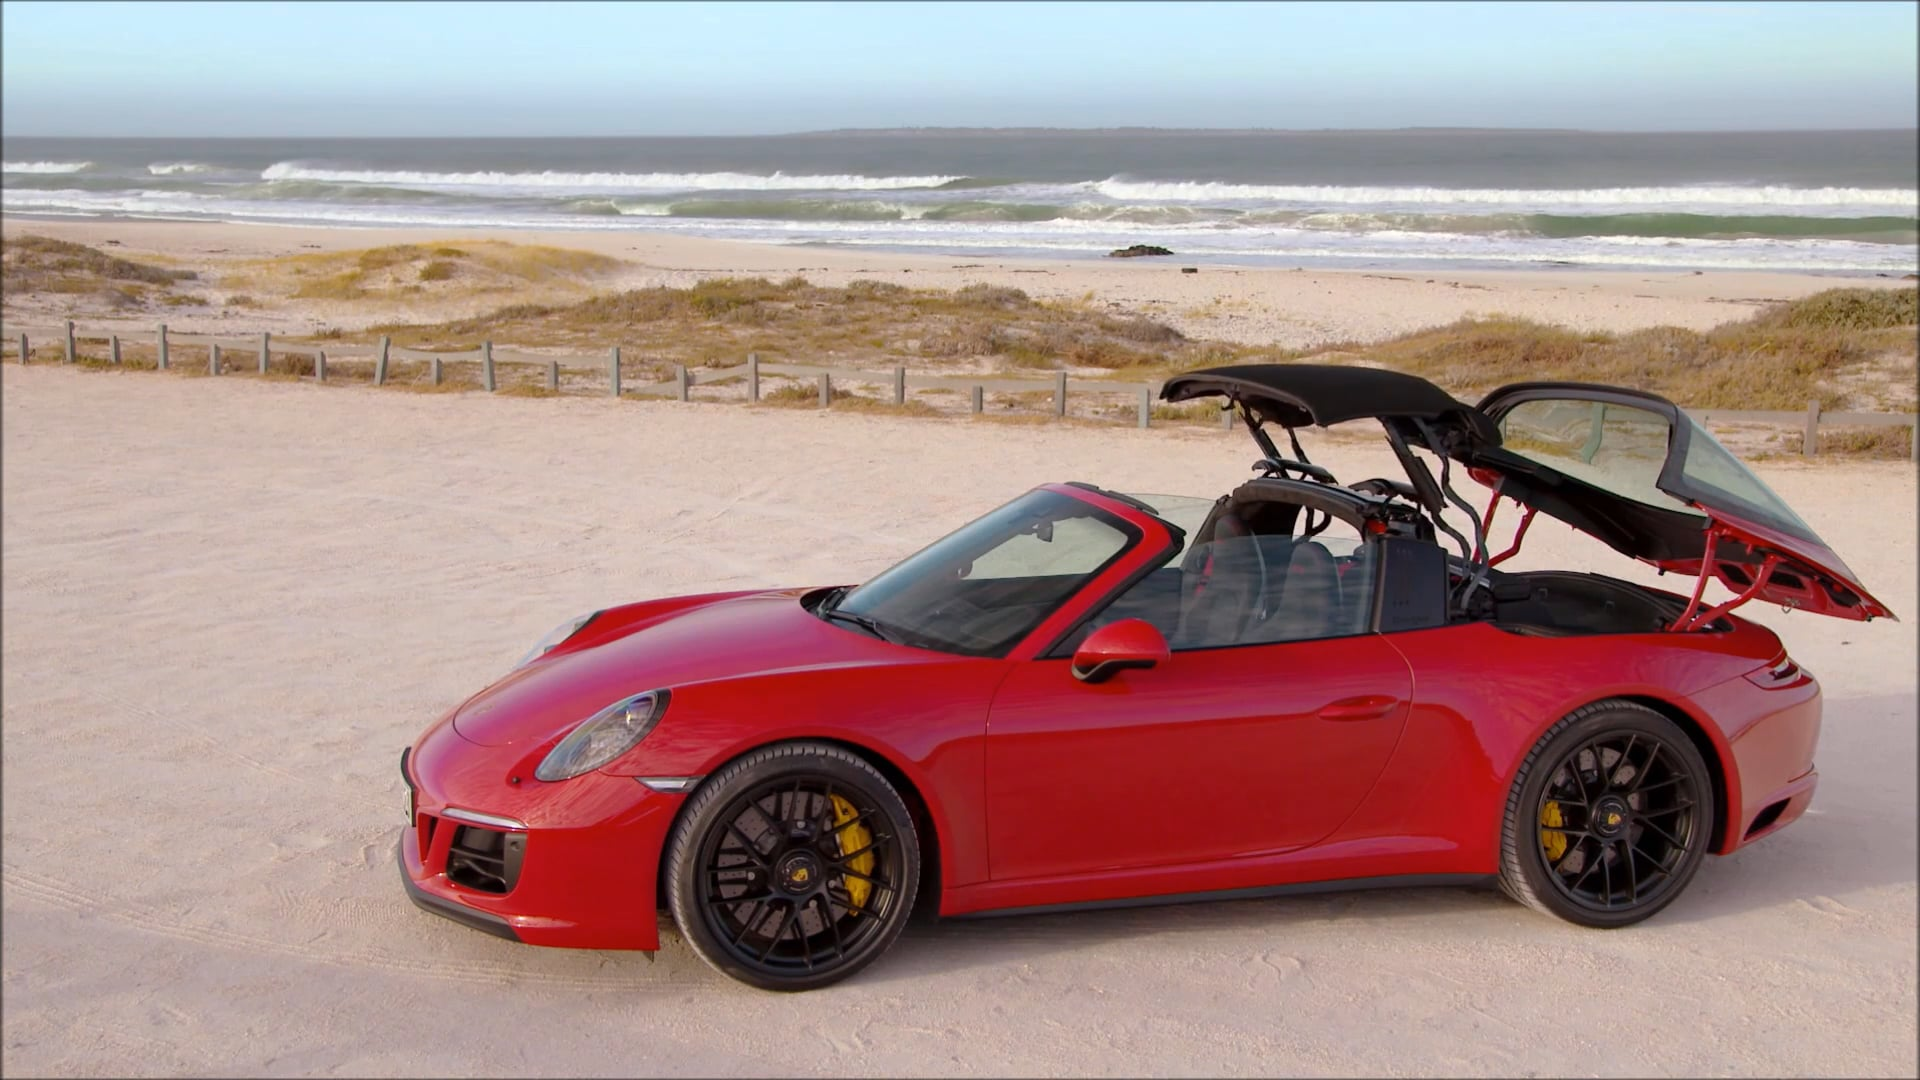 2018 porsche macan red. Wonderful Red Overview 2018 Porsche 911 Targa 4 GTS Carmine Red To Porsche Macan Red